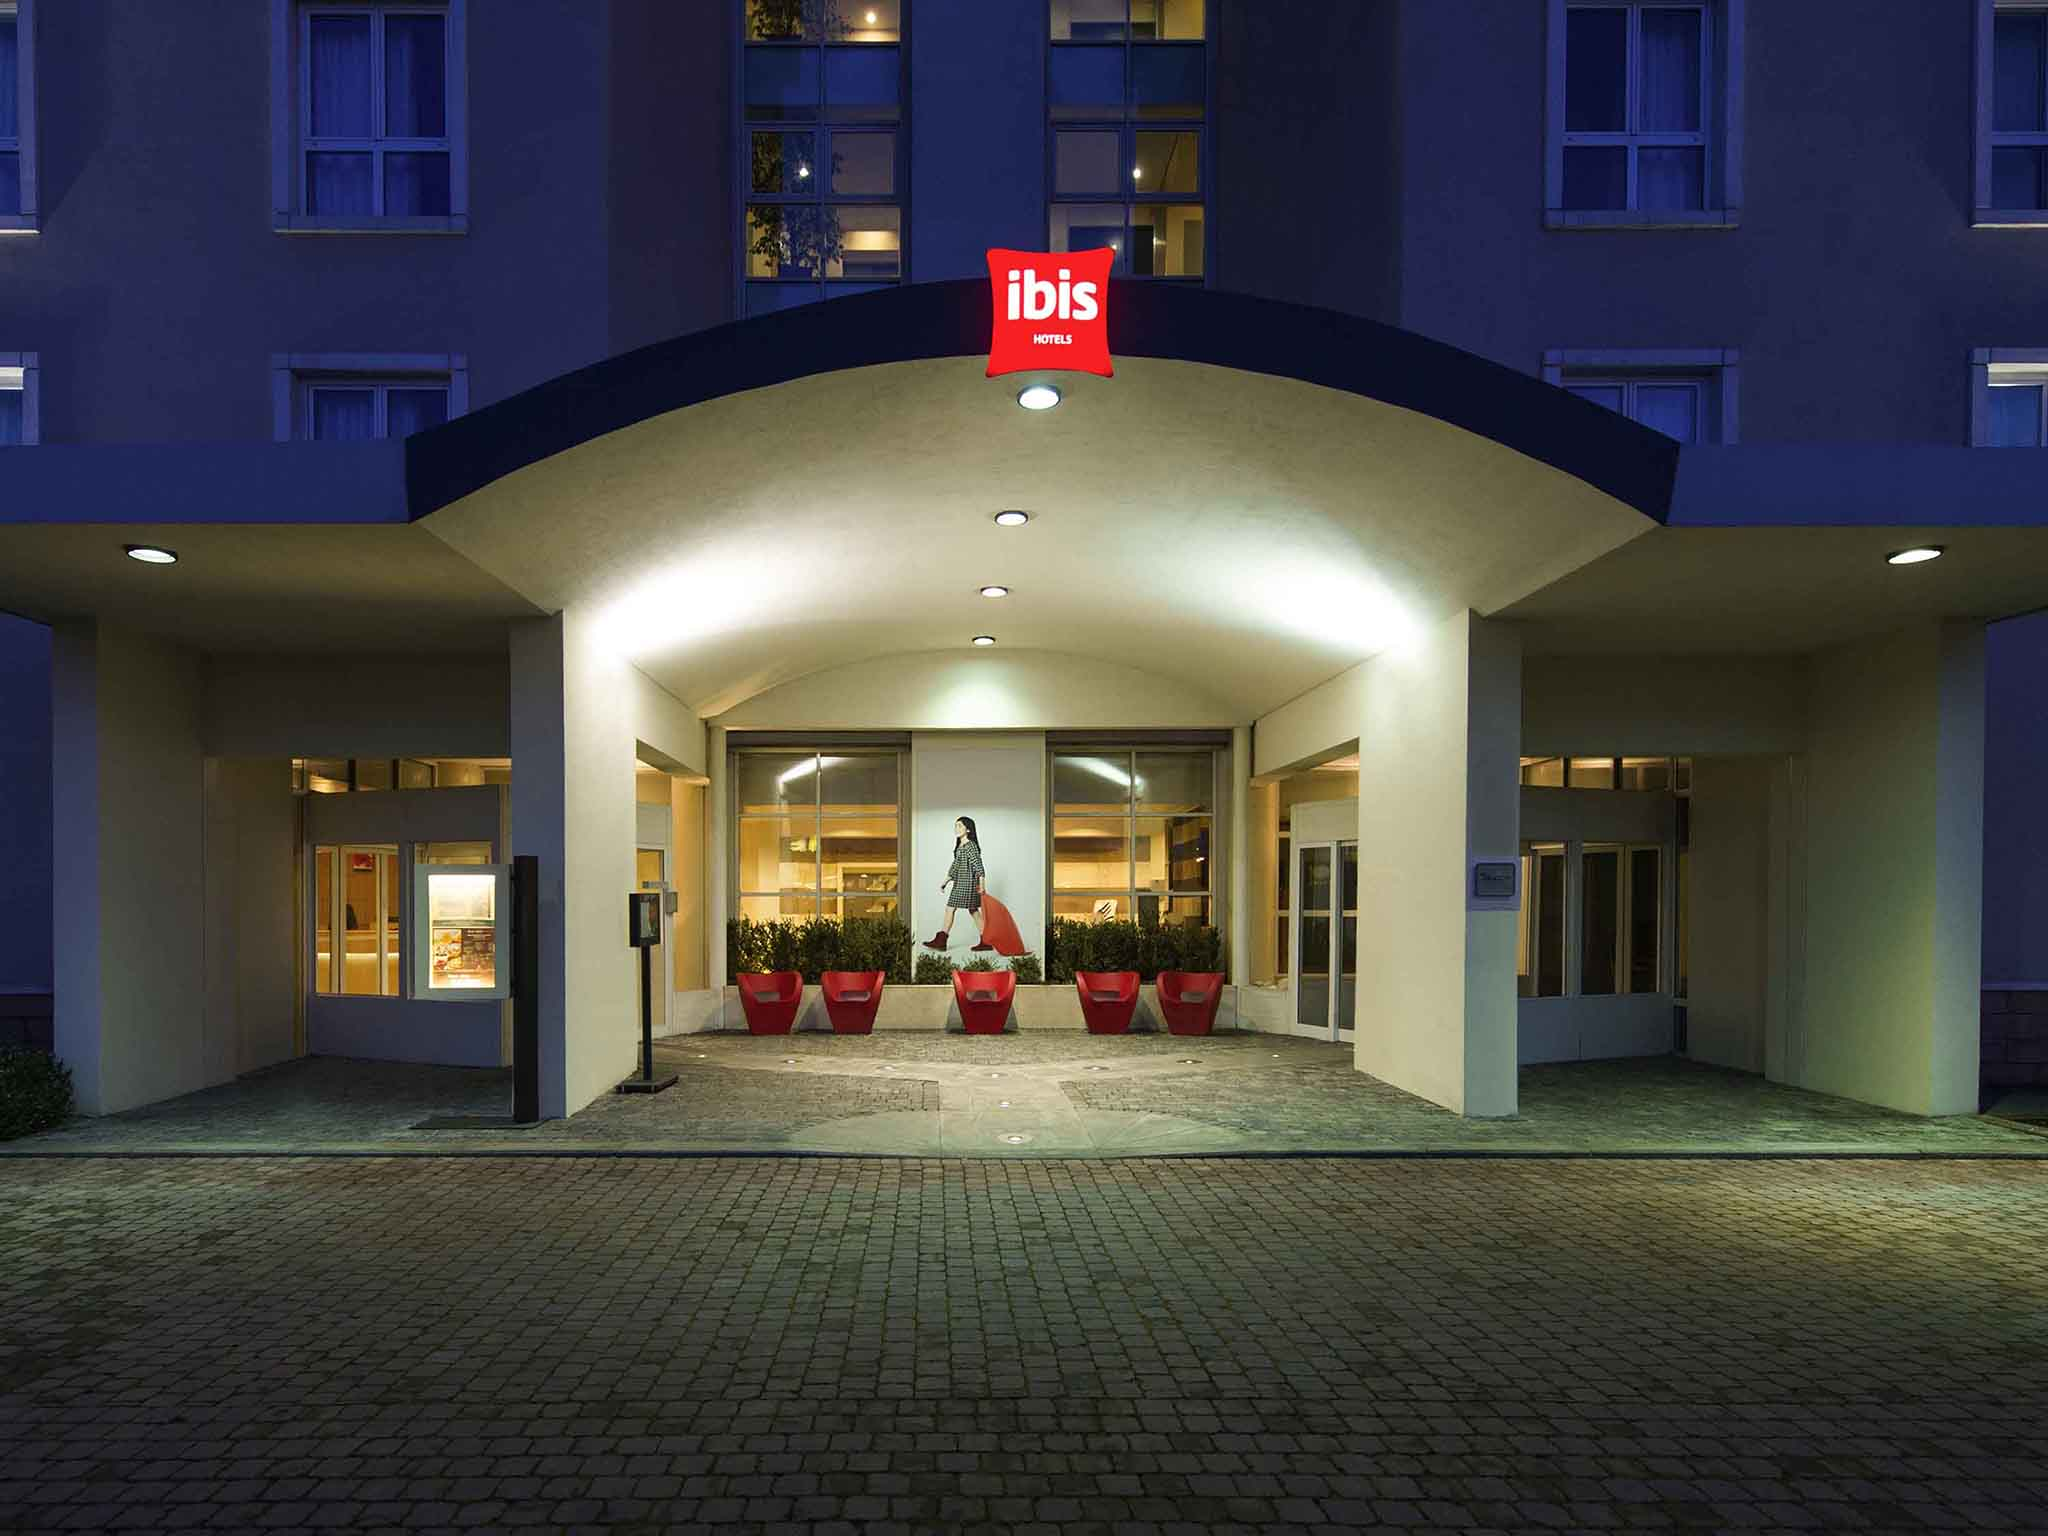 Hotel Ibis Florence North Airport